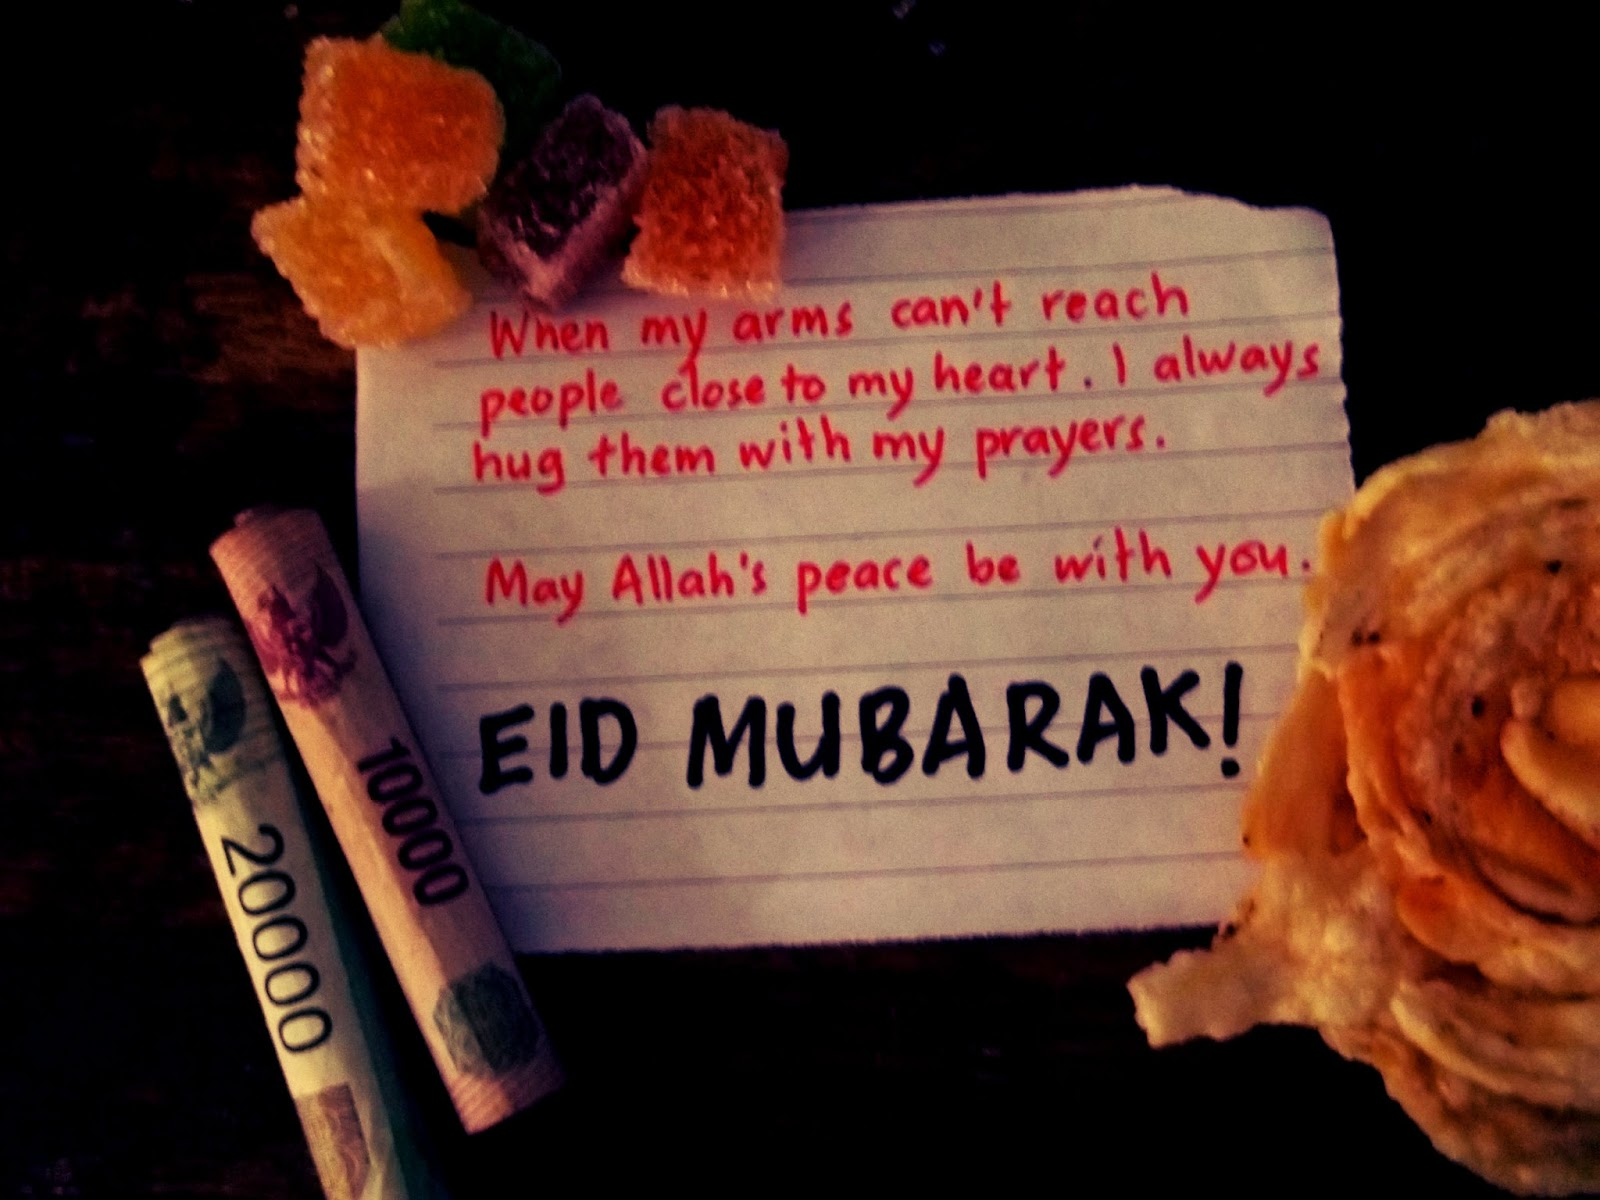 Latest and best eid mubarak greeting cards for eid mubarak 2016 best eid mubarak greeting cards kristyandbryce Image collections